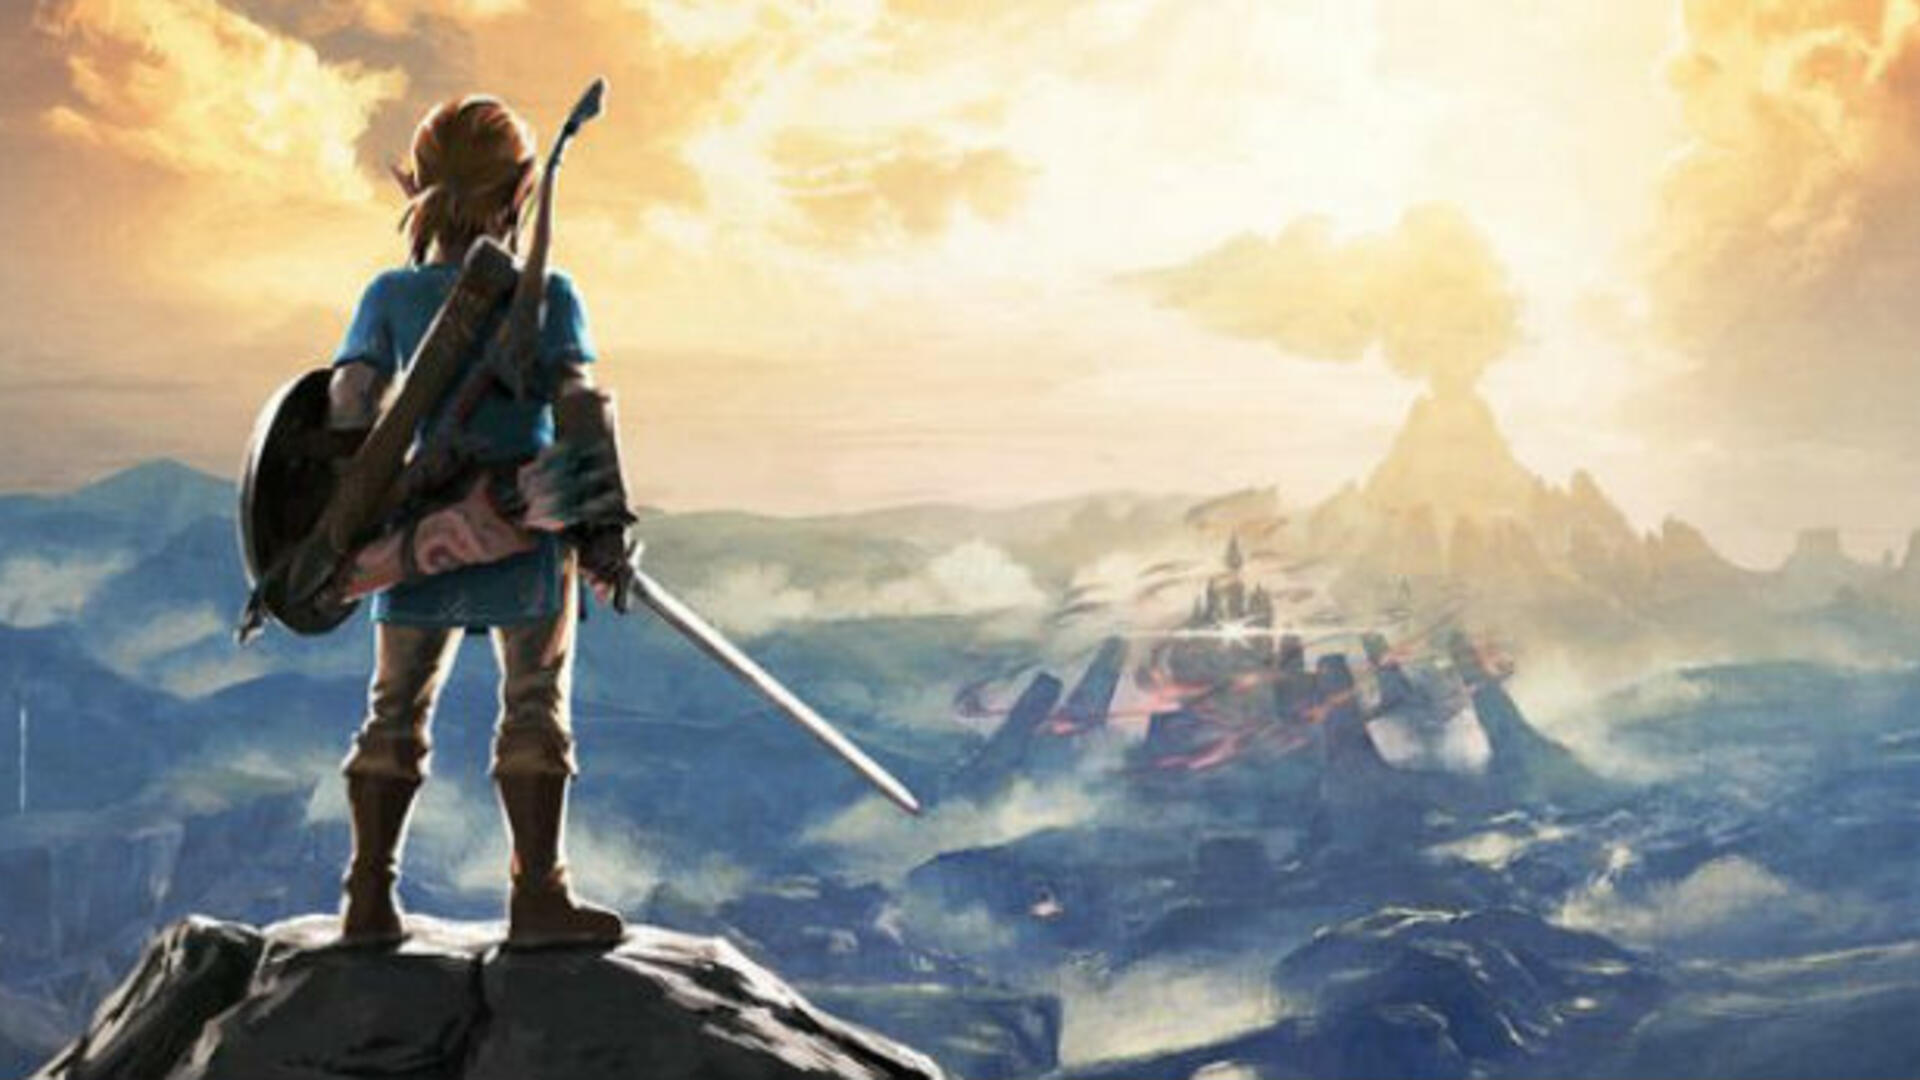 Miyamoto's Vision for the Zelda Series Comes Full-Circle with Breath of the Wild